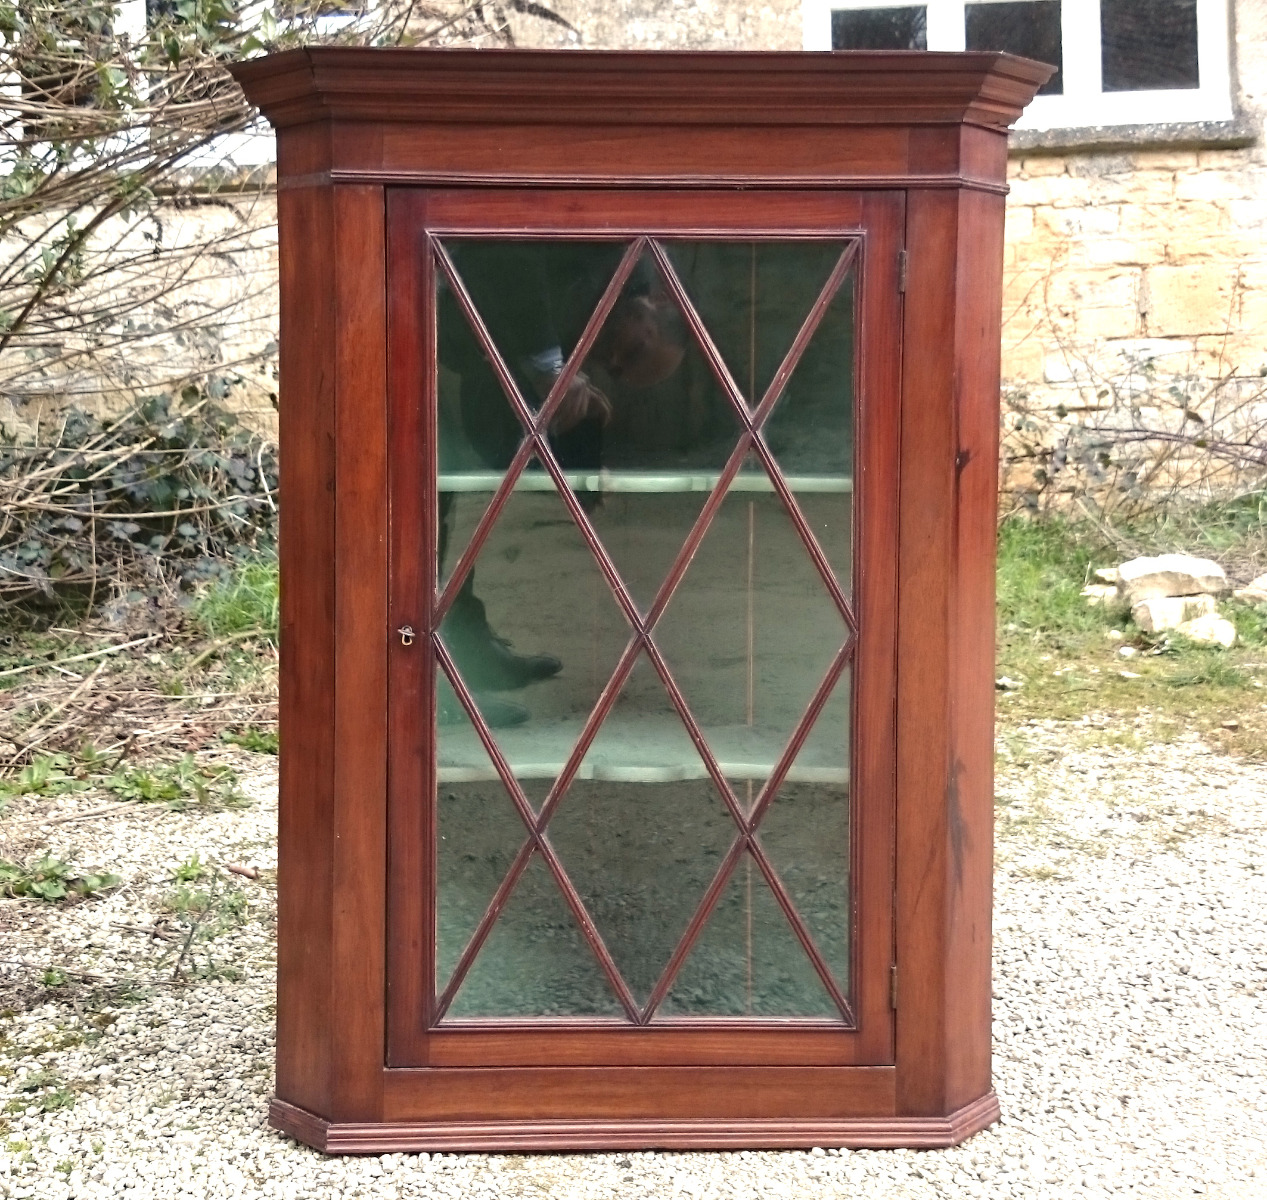 Antique hanging corner cupboard - Antique Corner Cupboards - Hares Antiques